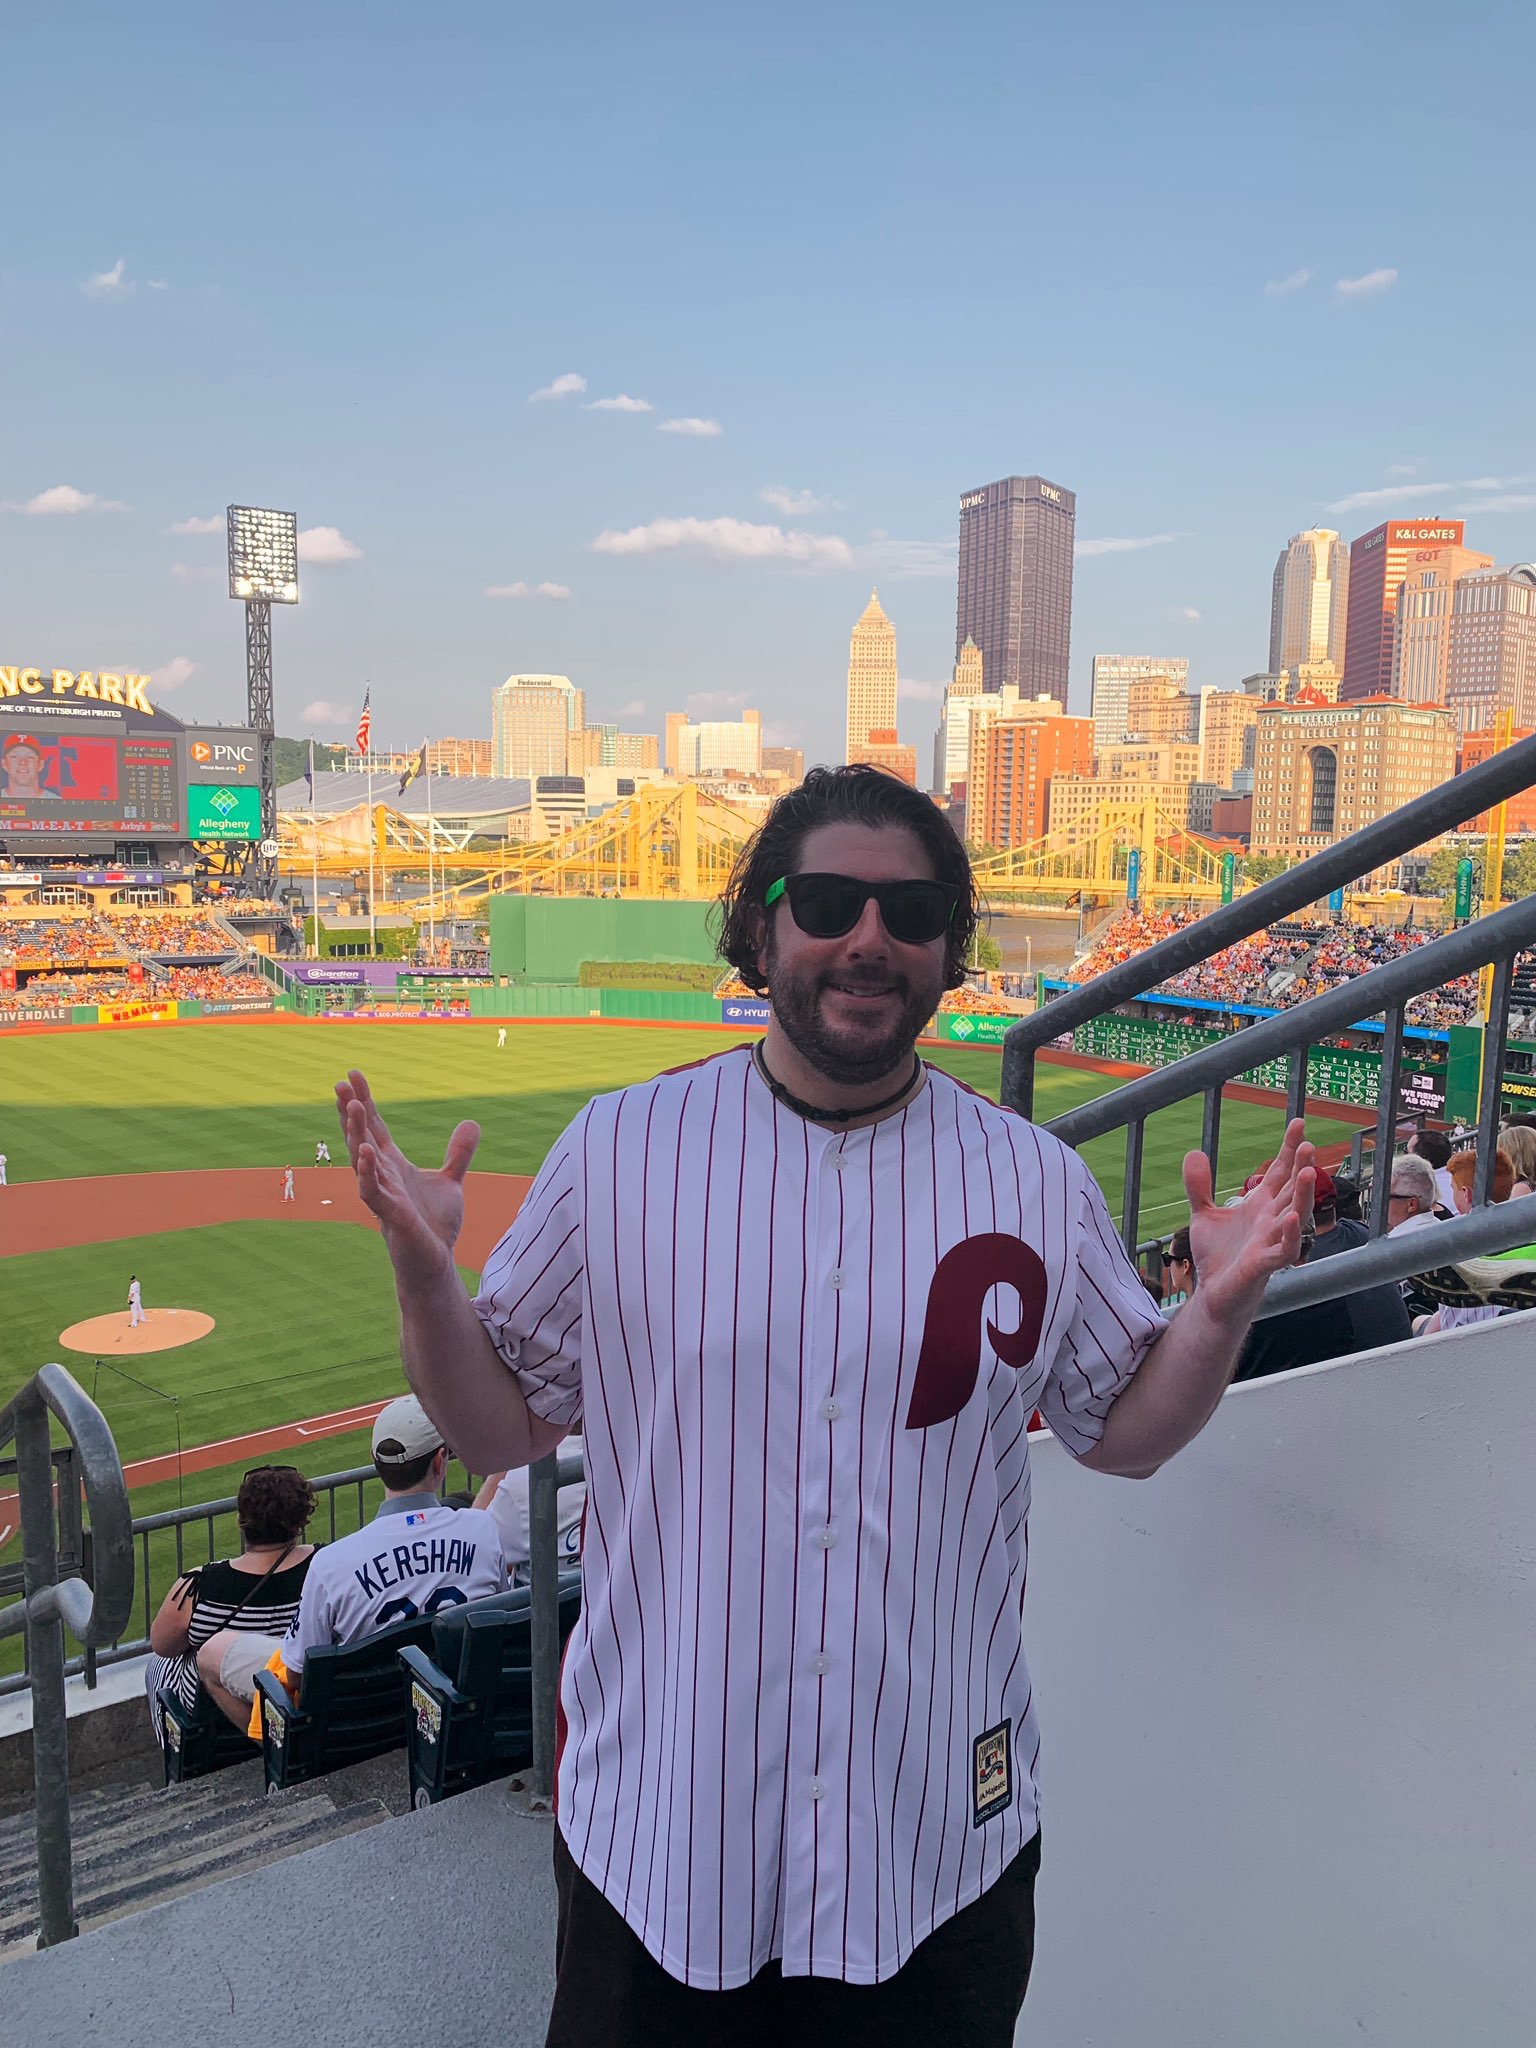 Lee shrugs at Phils-Pirates game (Pittsburgh).